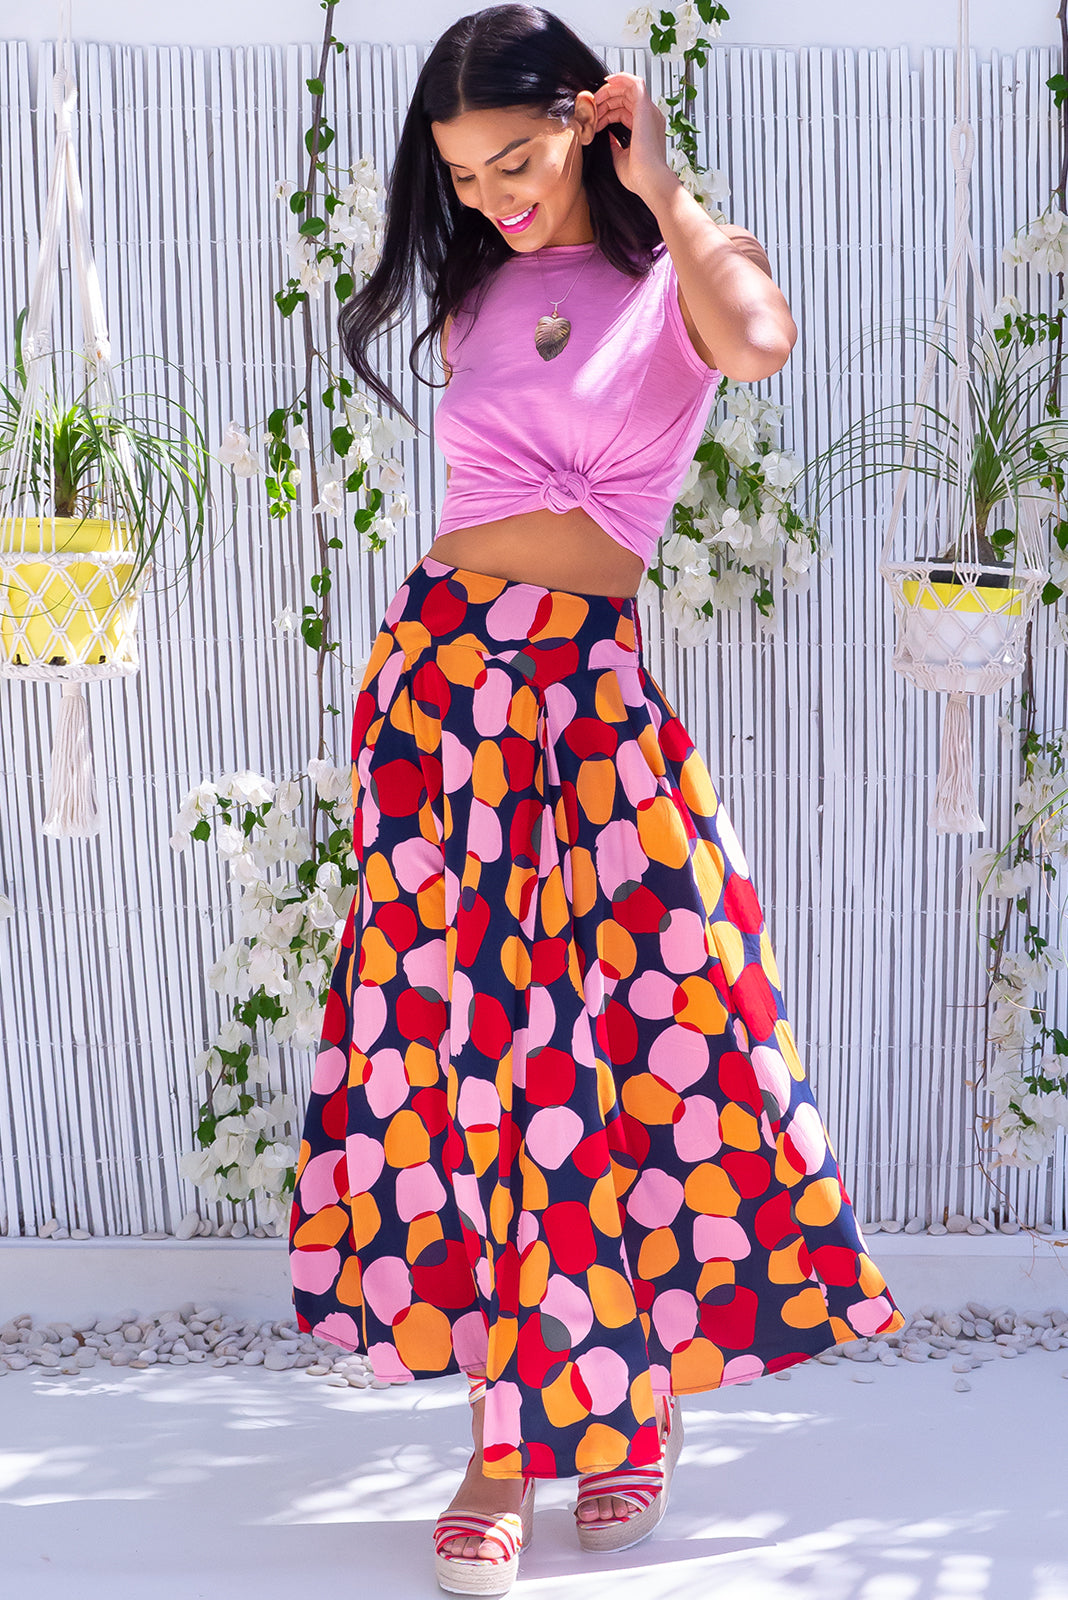 The Atlantis Zinzi Spot Maxi Skirt features double V-shaped waist yoke, side pockets and 100% viscose in ink base with pink, orange and red spots.